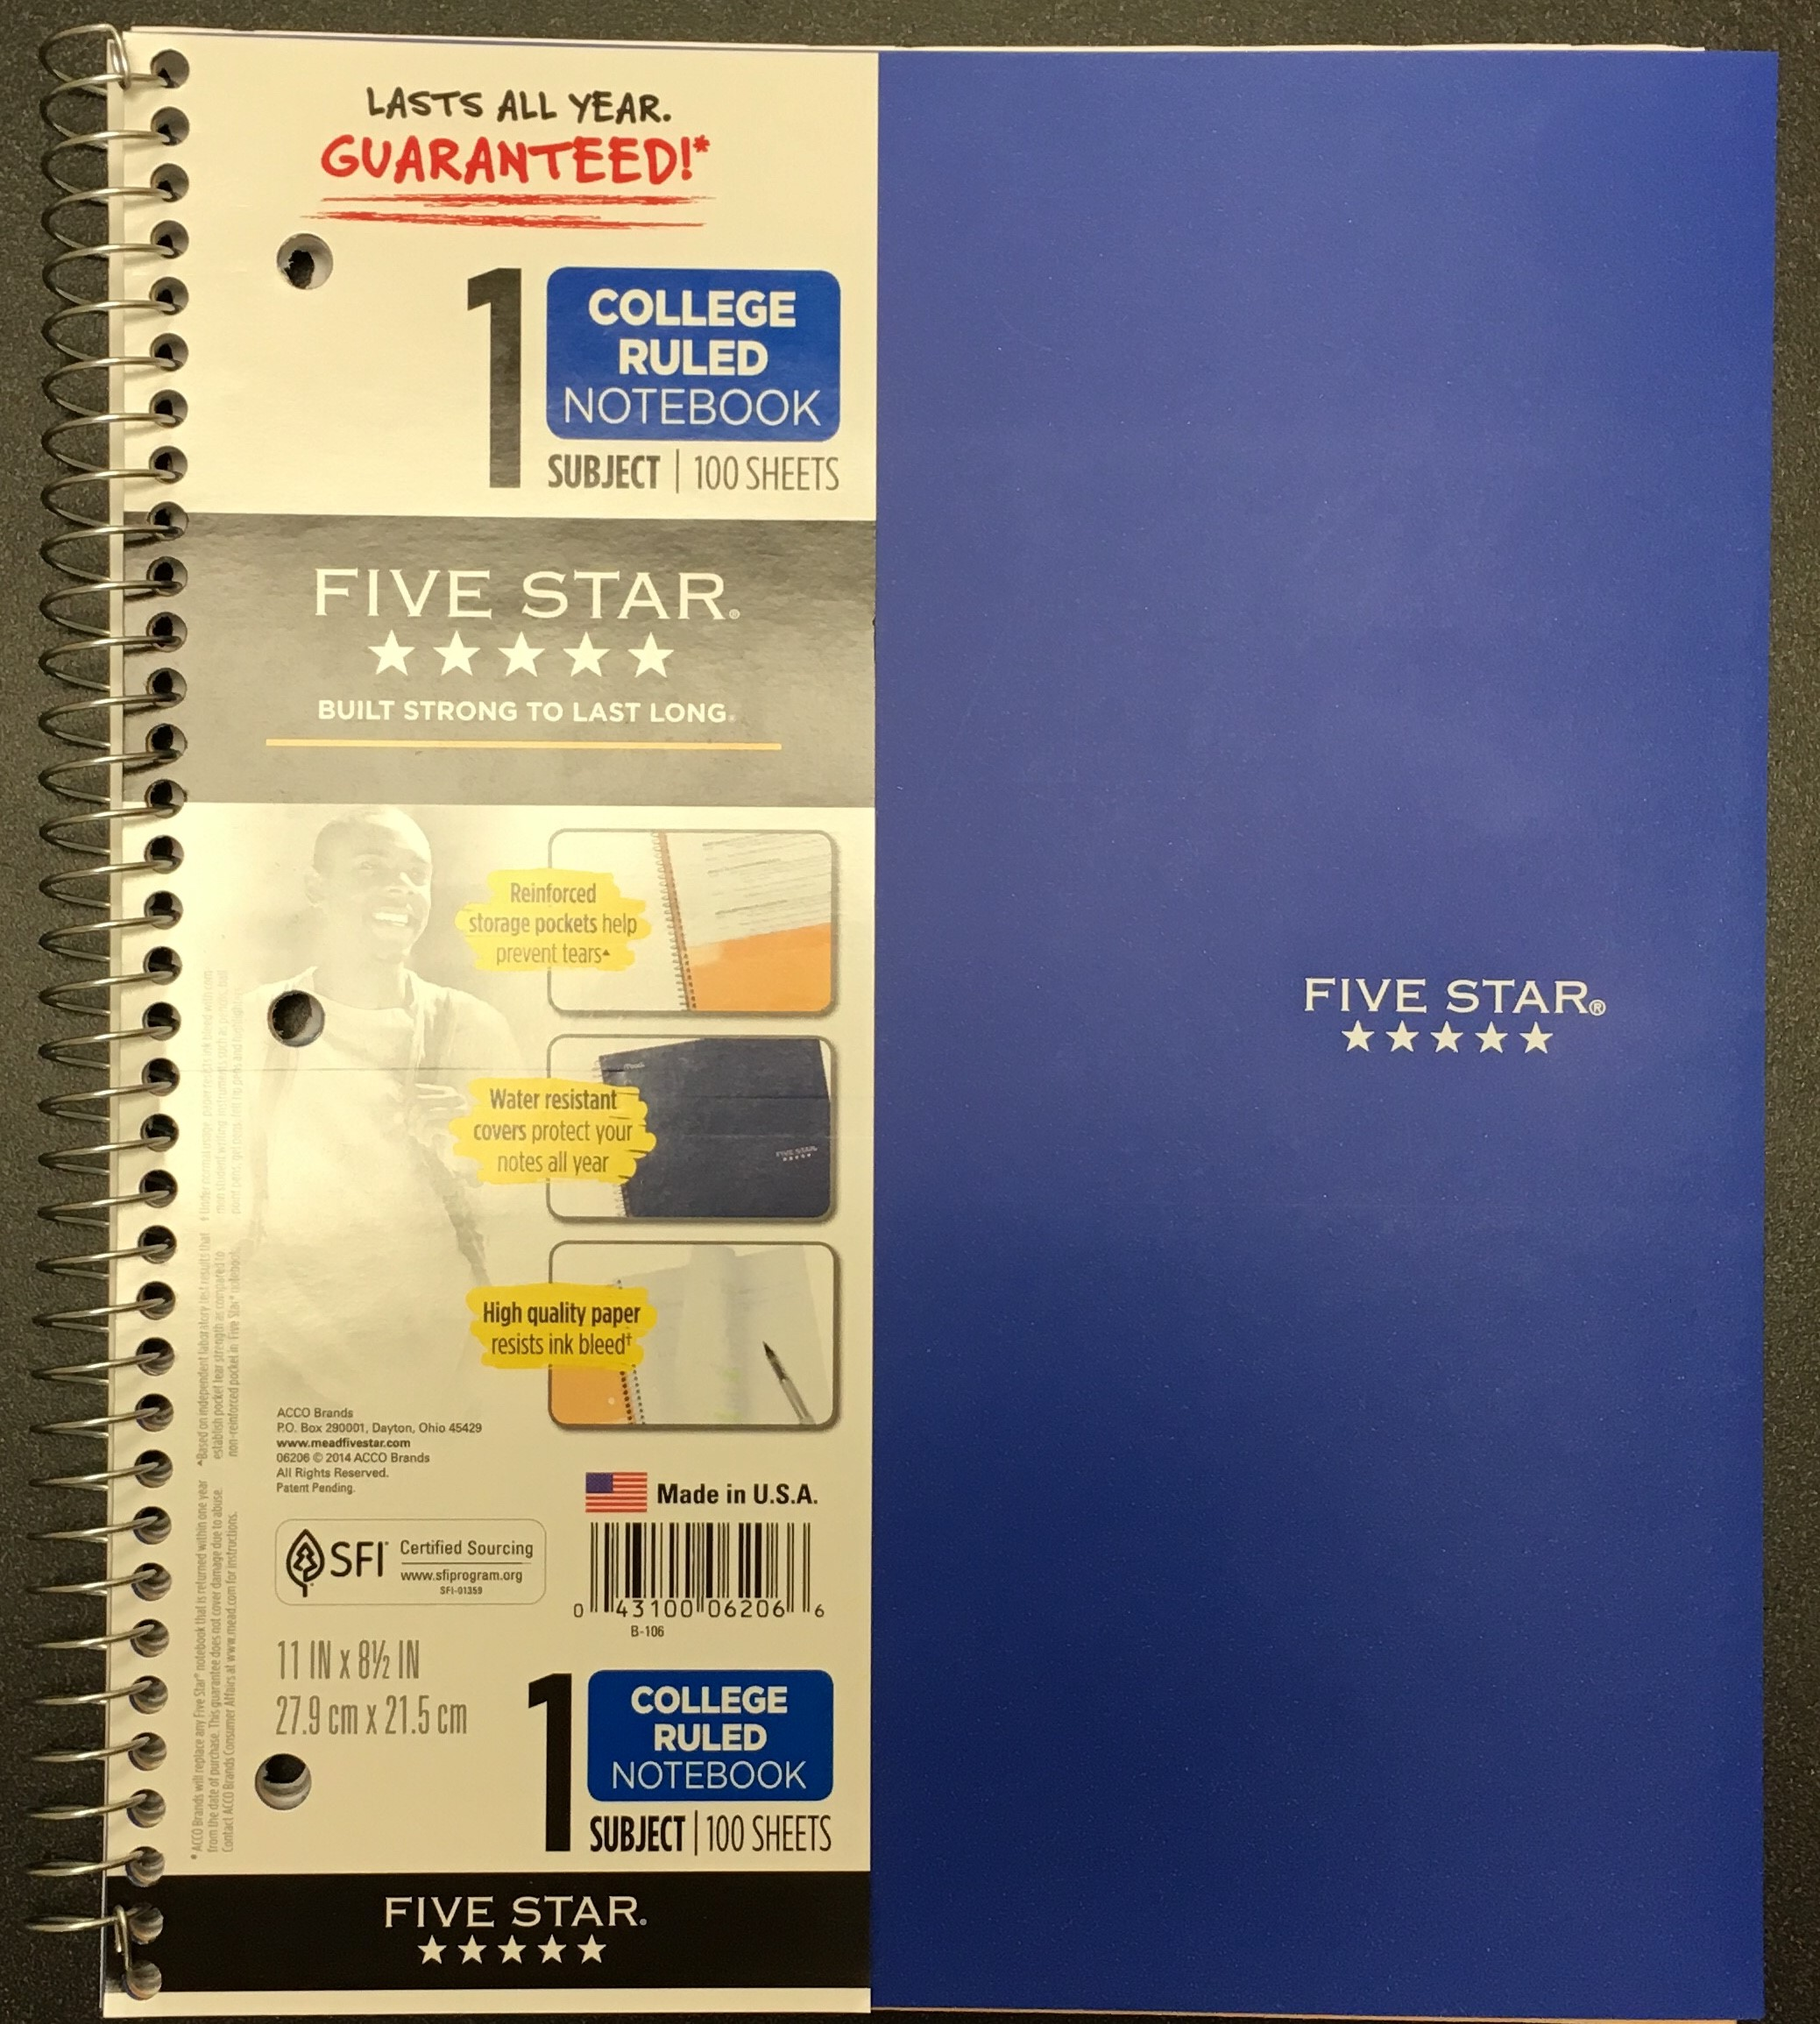 Image for the Five Star 1 Subject Notebook Multiple Colors product